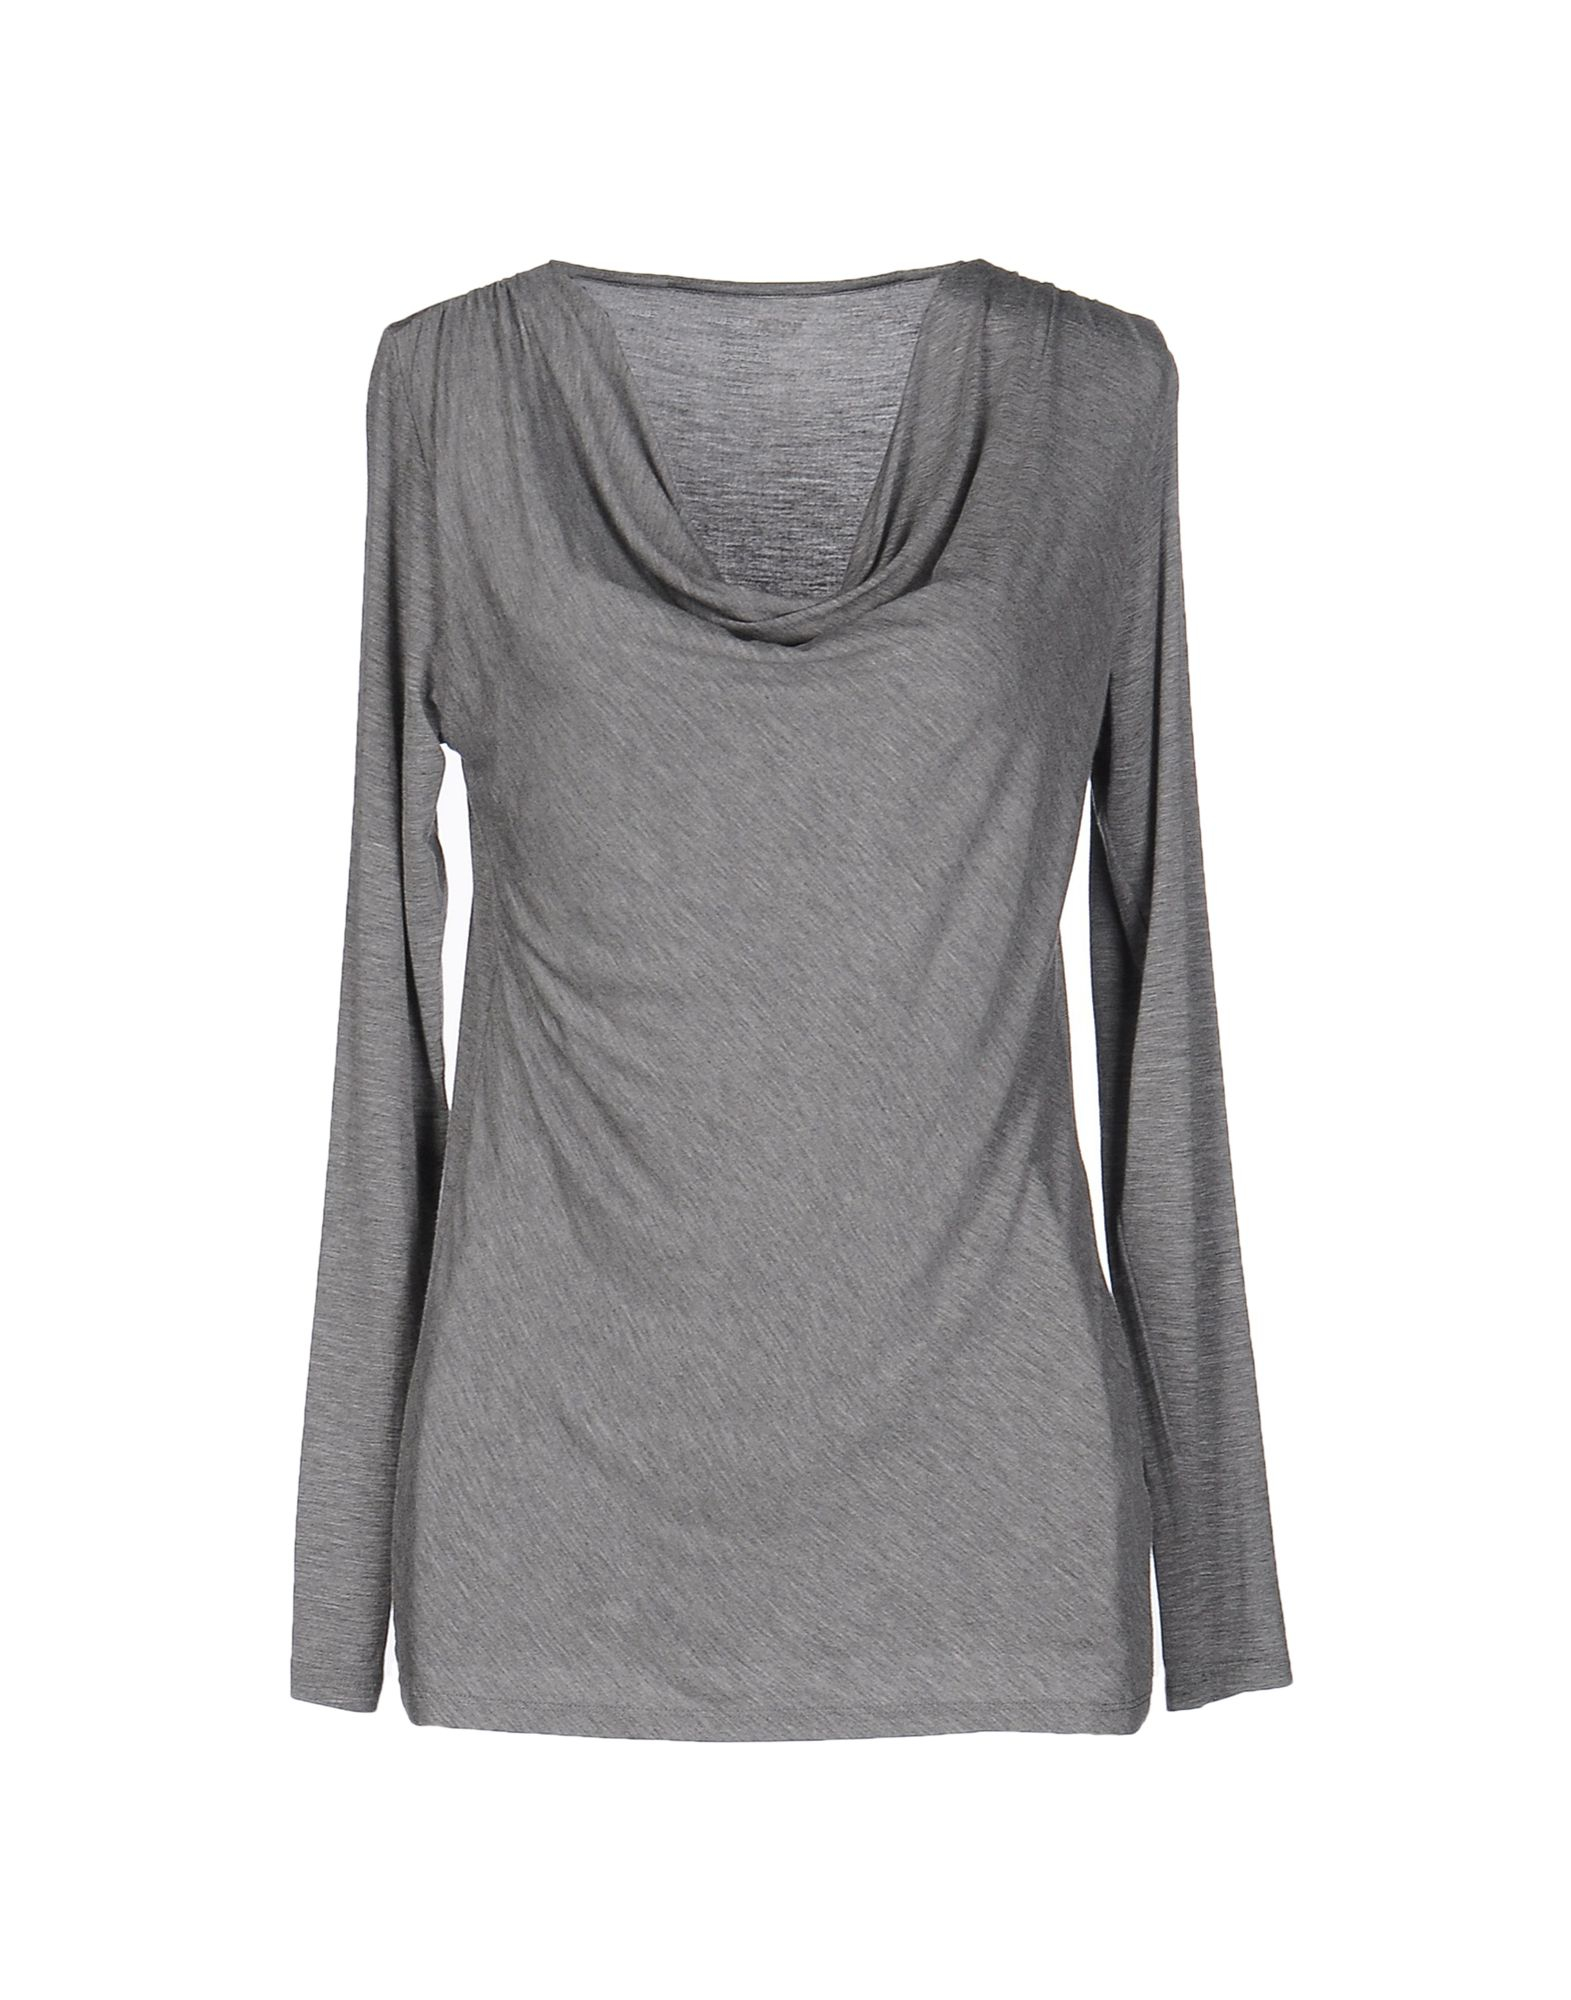 Lyst Majestic Filatures T Shirt In Gray